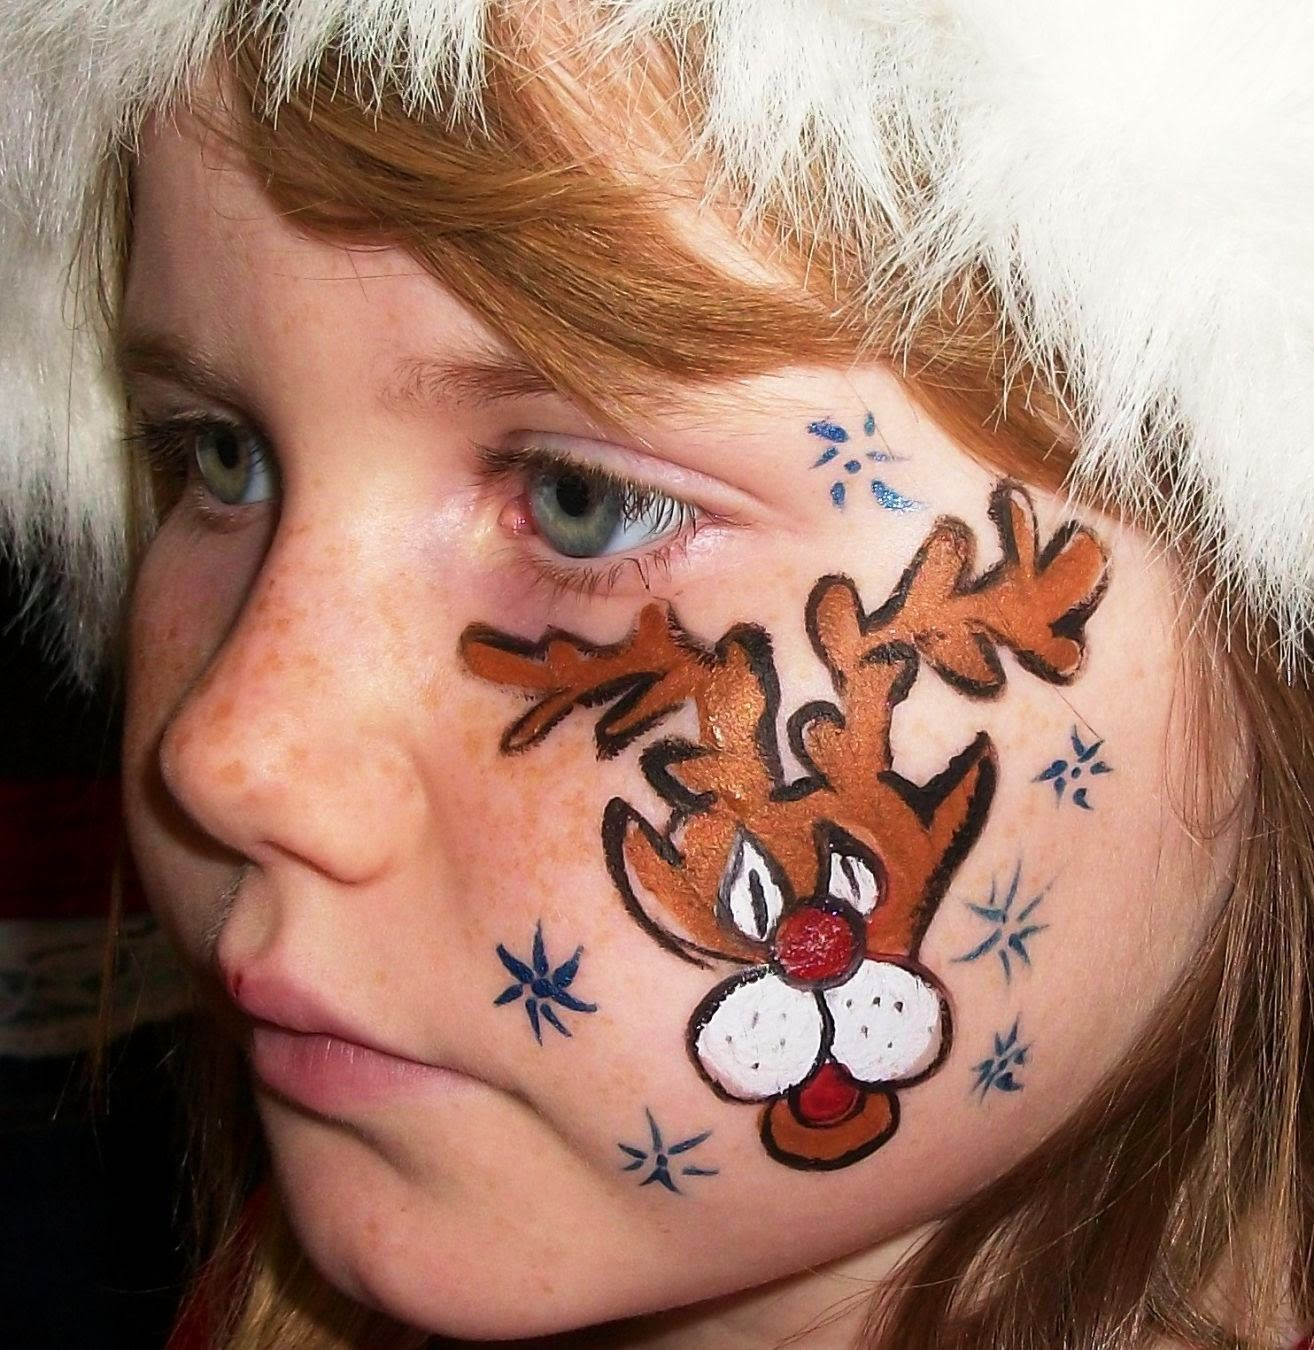 A Mile of Smiles Events reindeer face paint